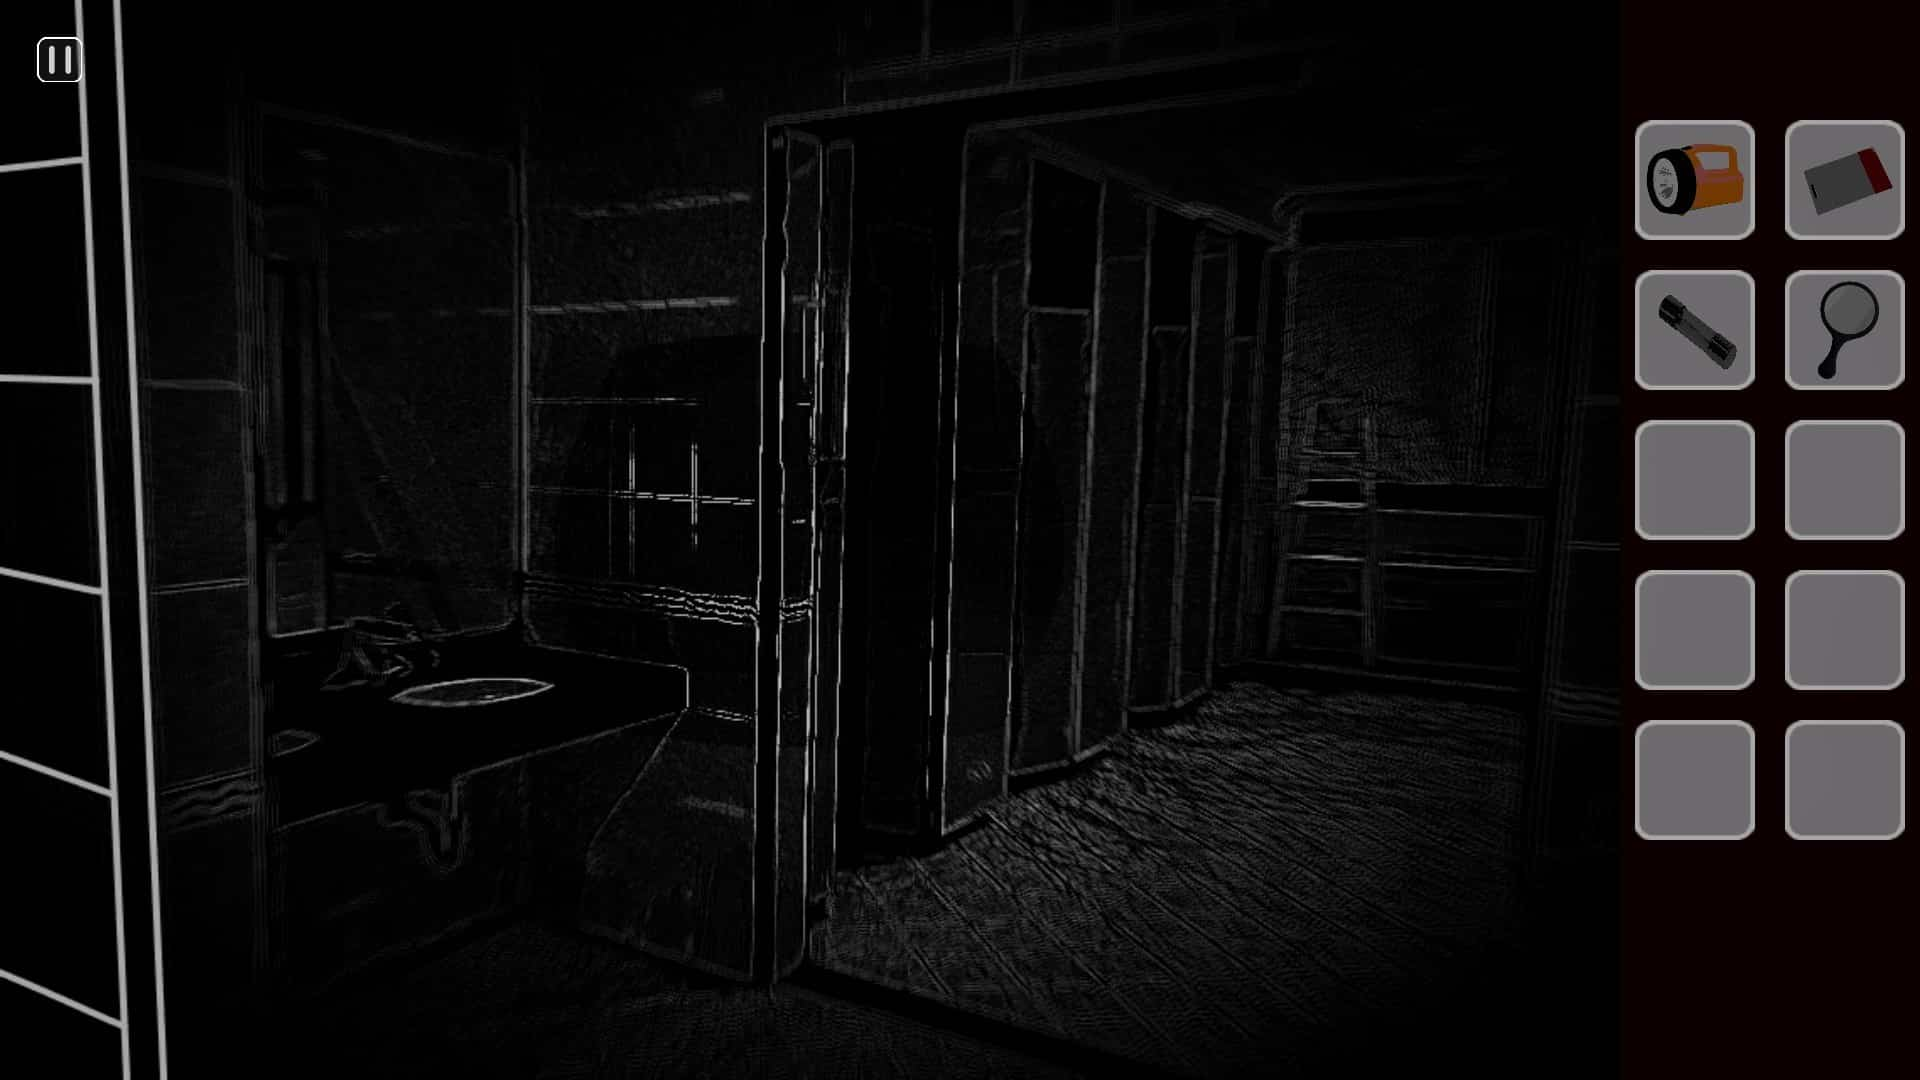 Lucid Dream sizrit free game point and click horror puzzles